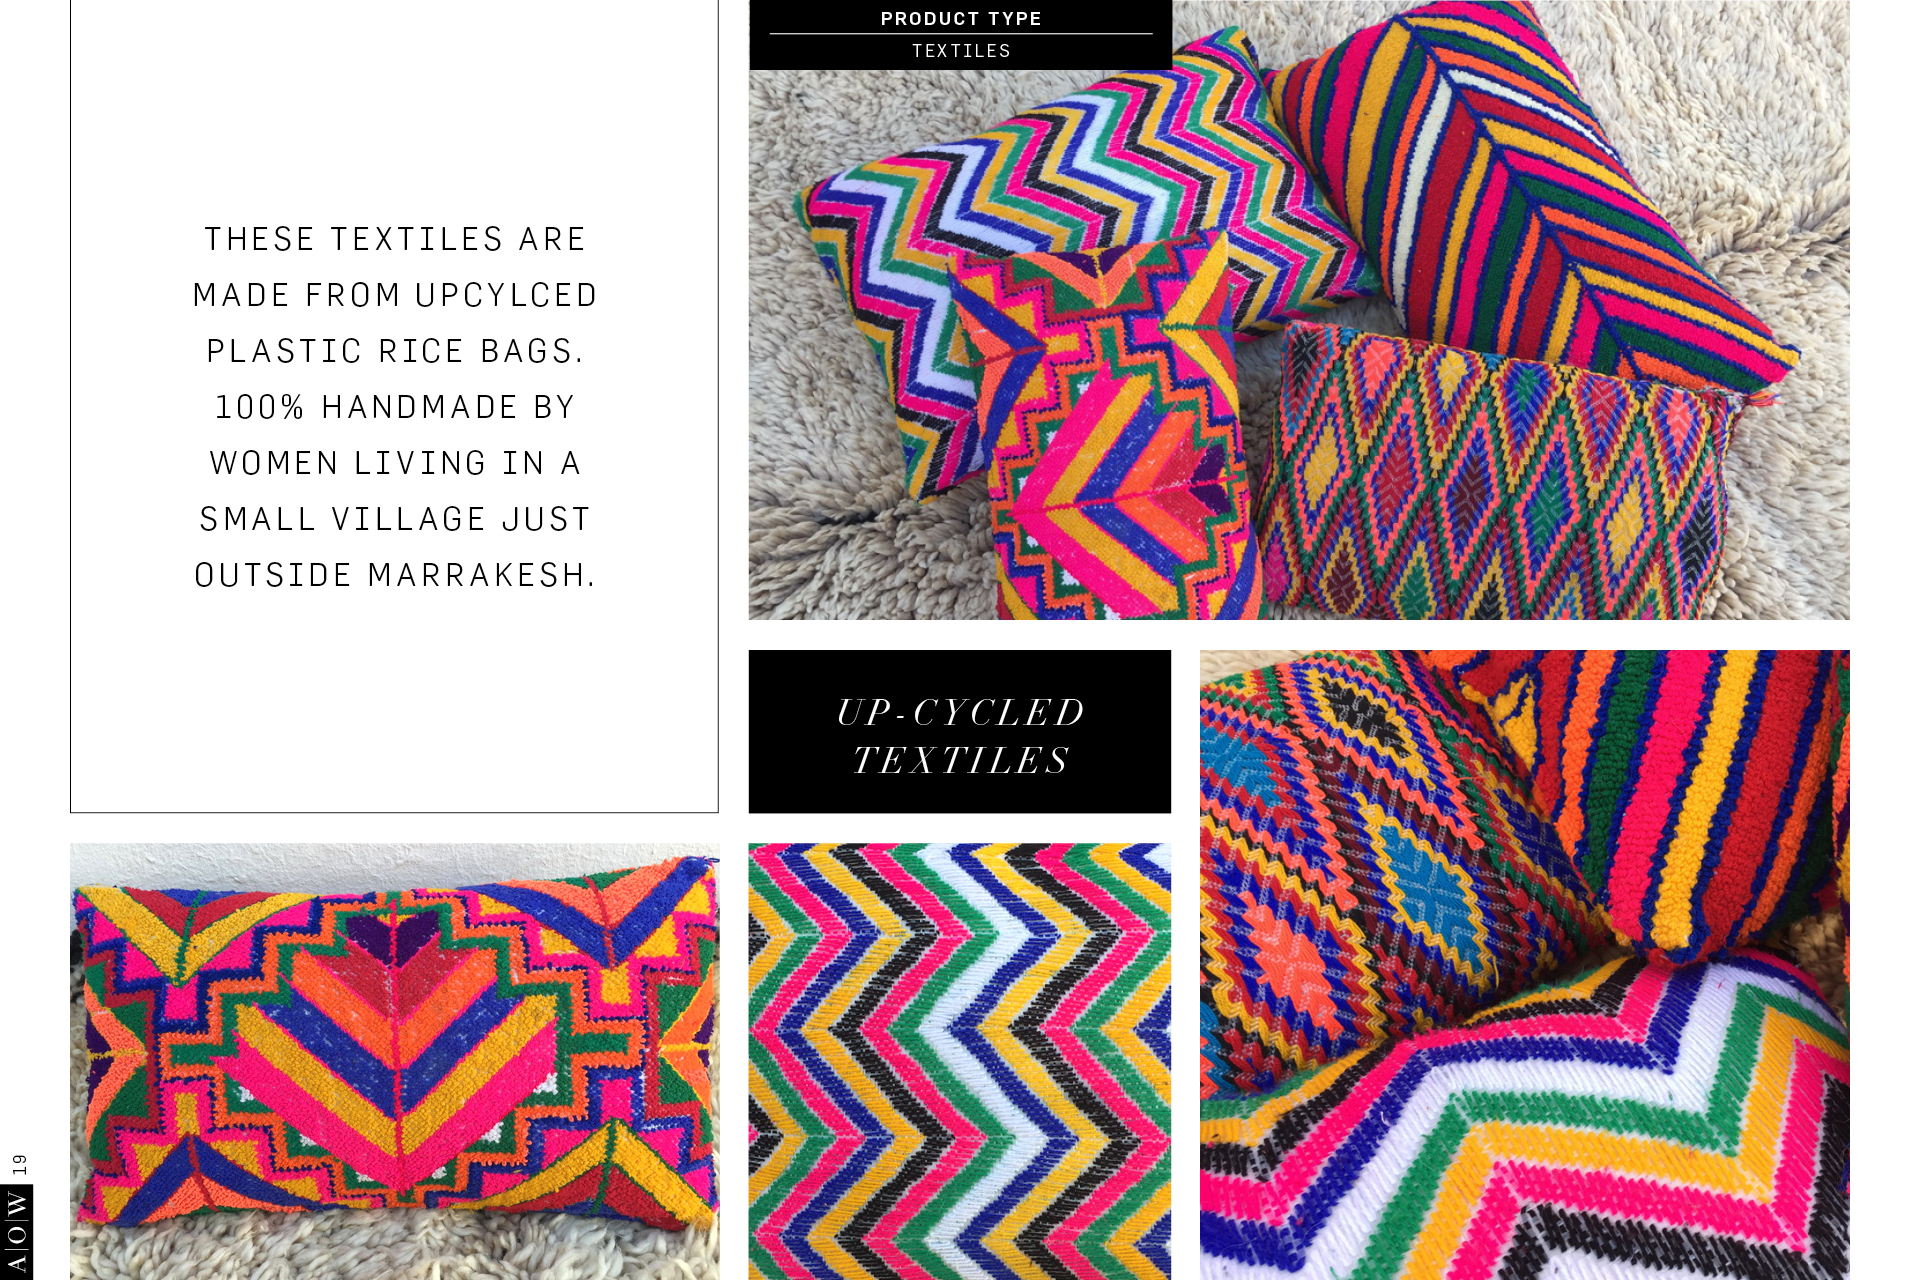 AOW Morocco Report_textiles3.jpg